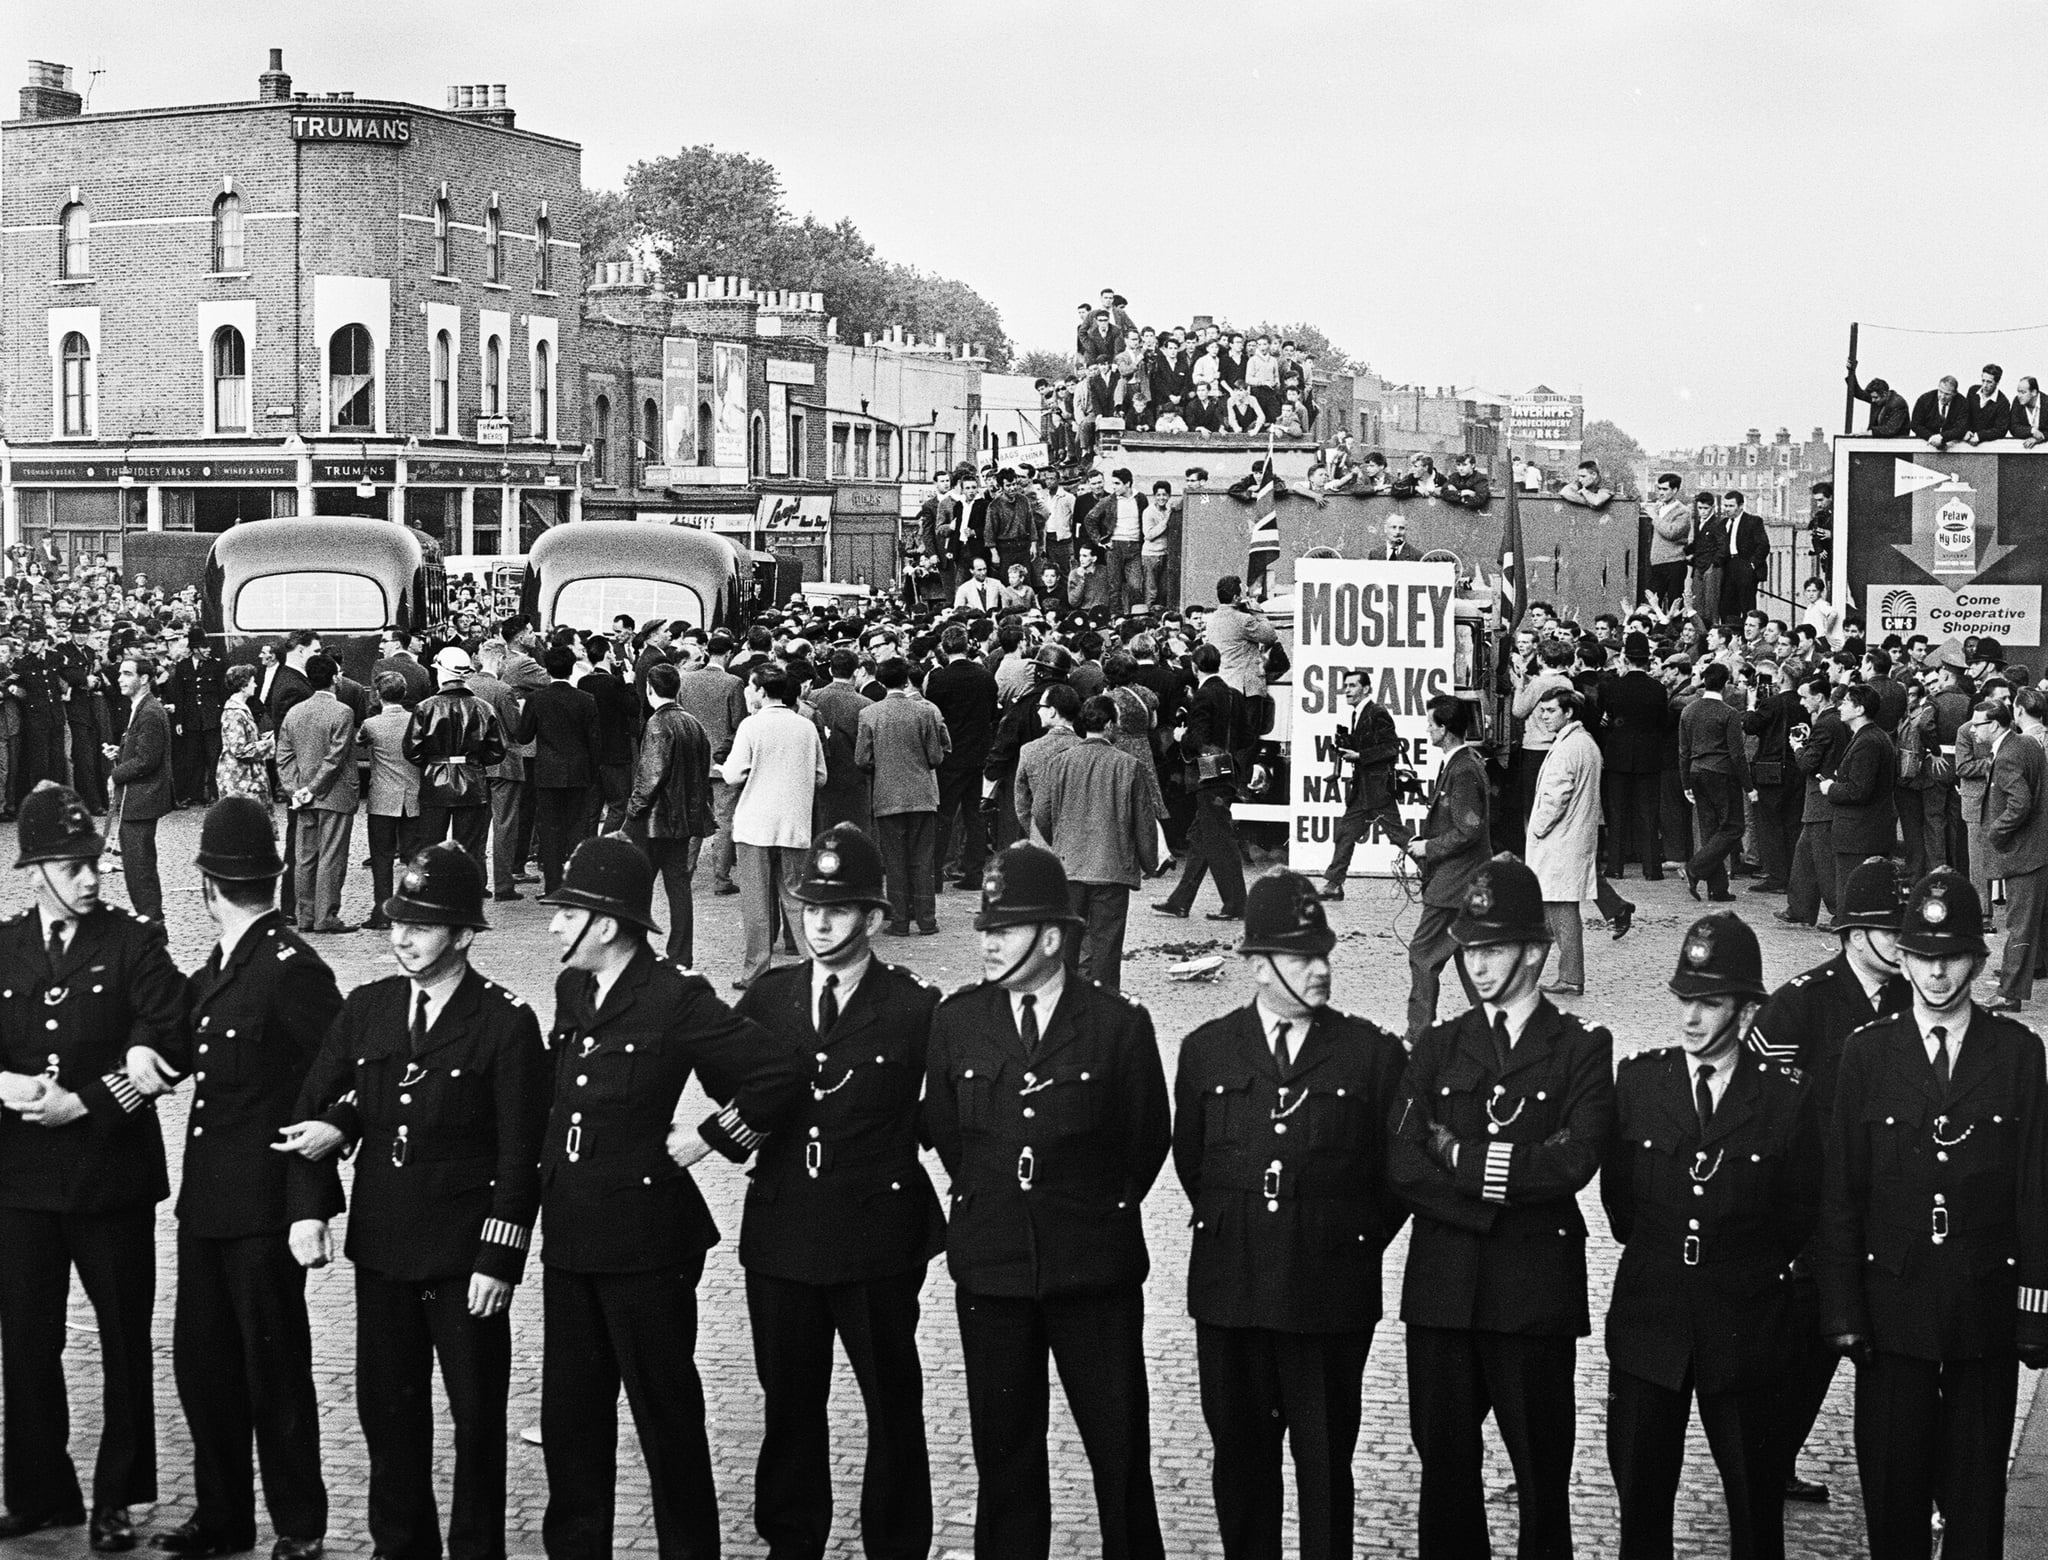 Large crowd gathered in Ridley Road E8 to demonstrate against former fascist leader Sir Oswald Mosley and members of his anti-Semitic Blackshirt group who had planned a rally in London's East End. Mosley and his anti-Semitic Blackshirt were assaulted and punched to the ground as soon as his meeting opened at Ridley Road, Dalston. Police closed the meeting within the first three minutes and made 54 arrests, one which was Sir Oswald's son Max., our picture Shows: Police presence at the rally, 31st July 1962. (Photo by Alisdair MacDonald/Mirrorpix/Getty Images)